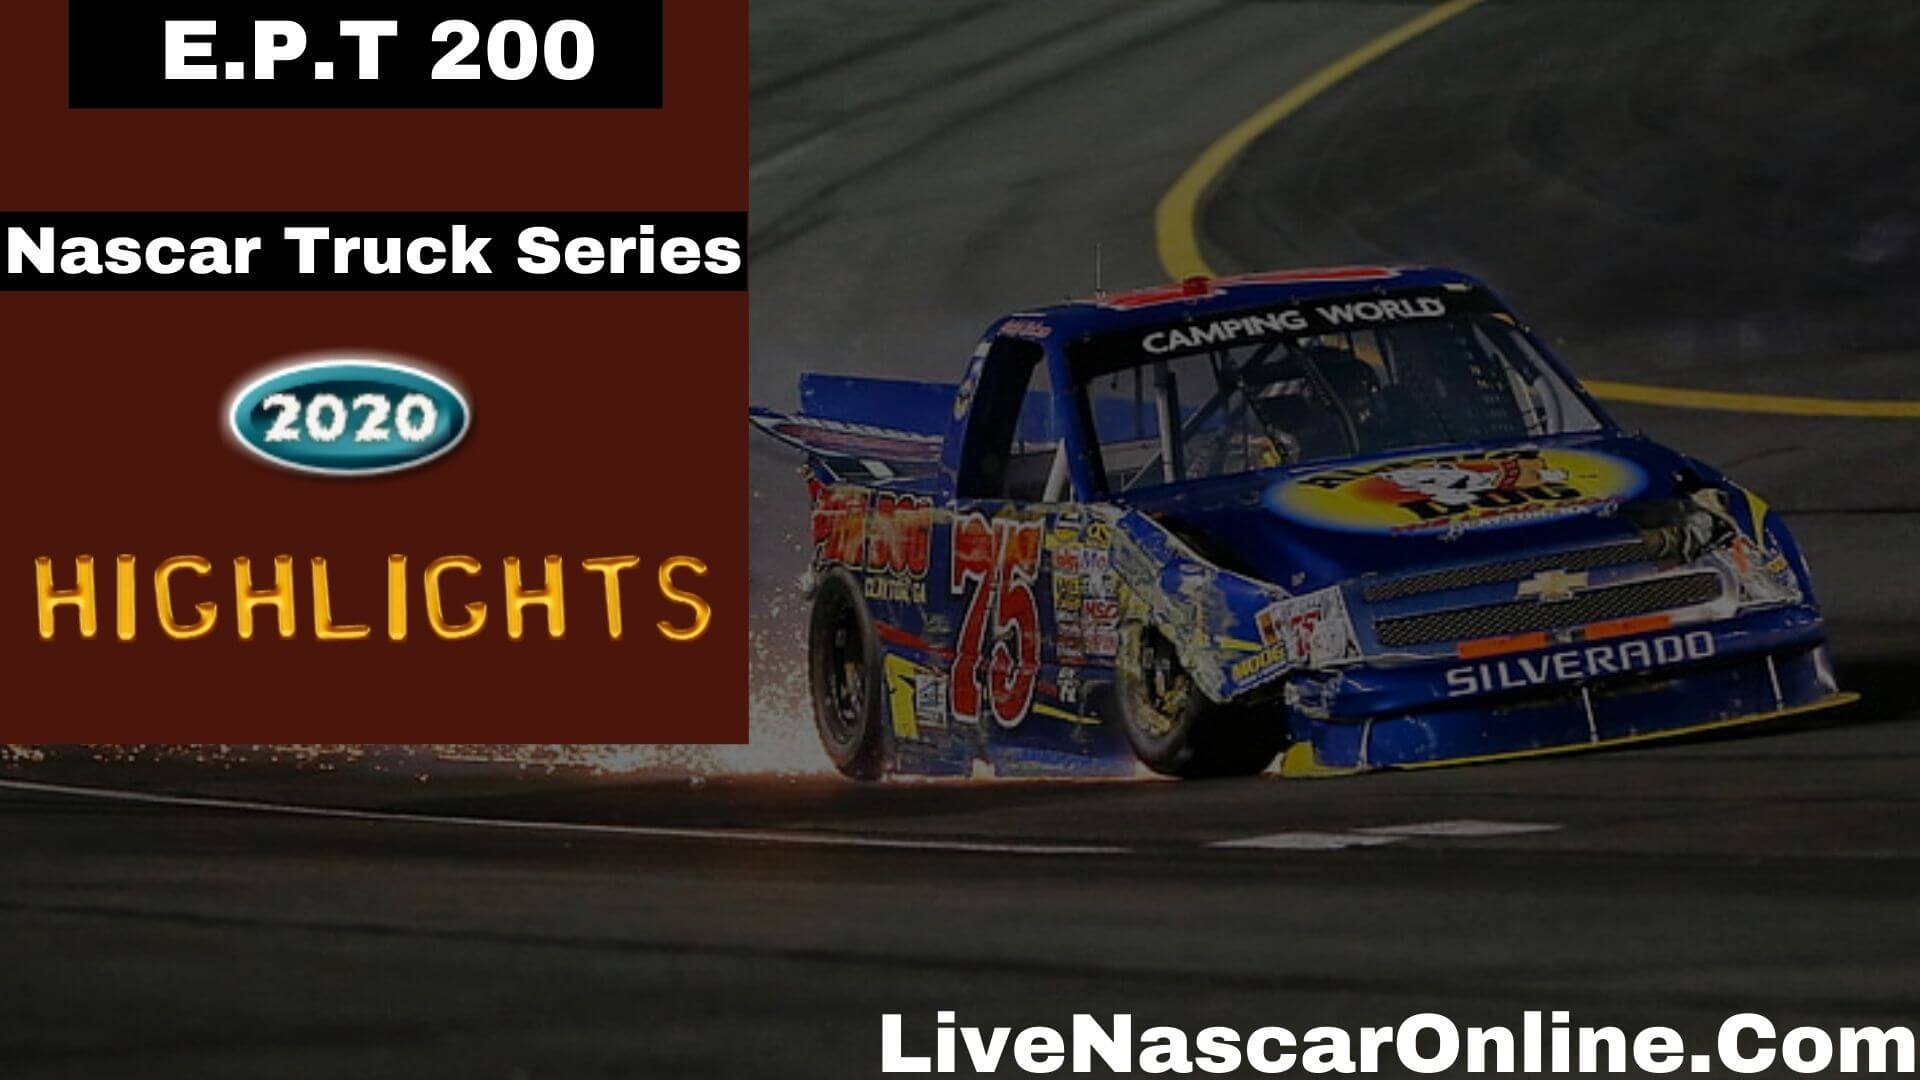 E P T 200 Nascar Truck Series Highlights 2020